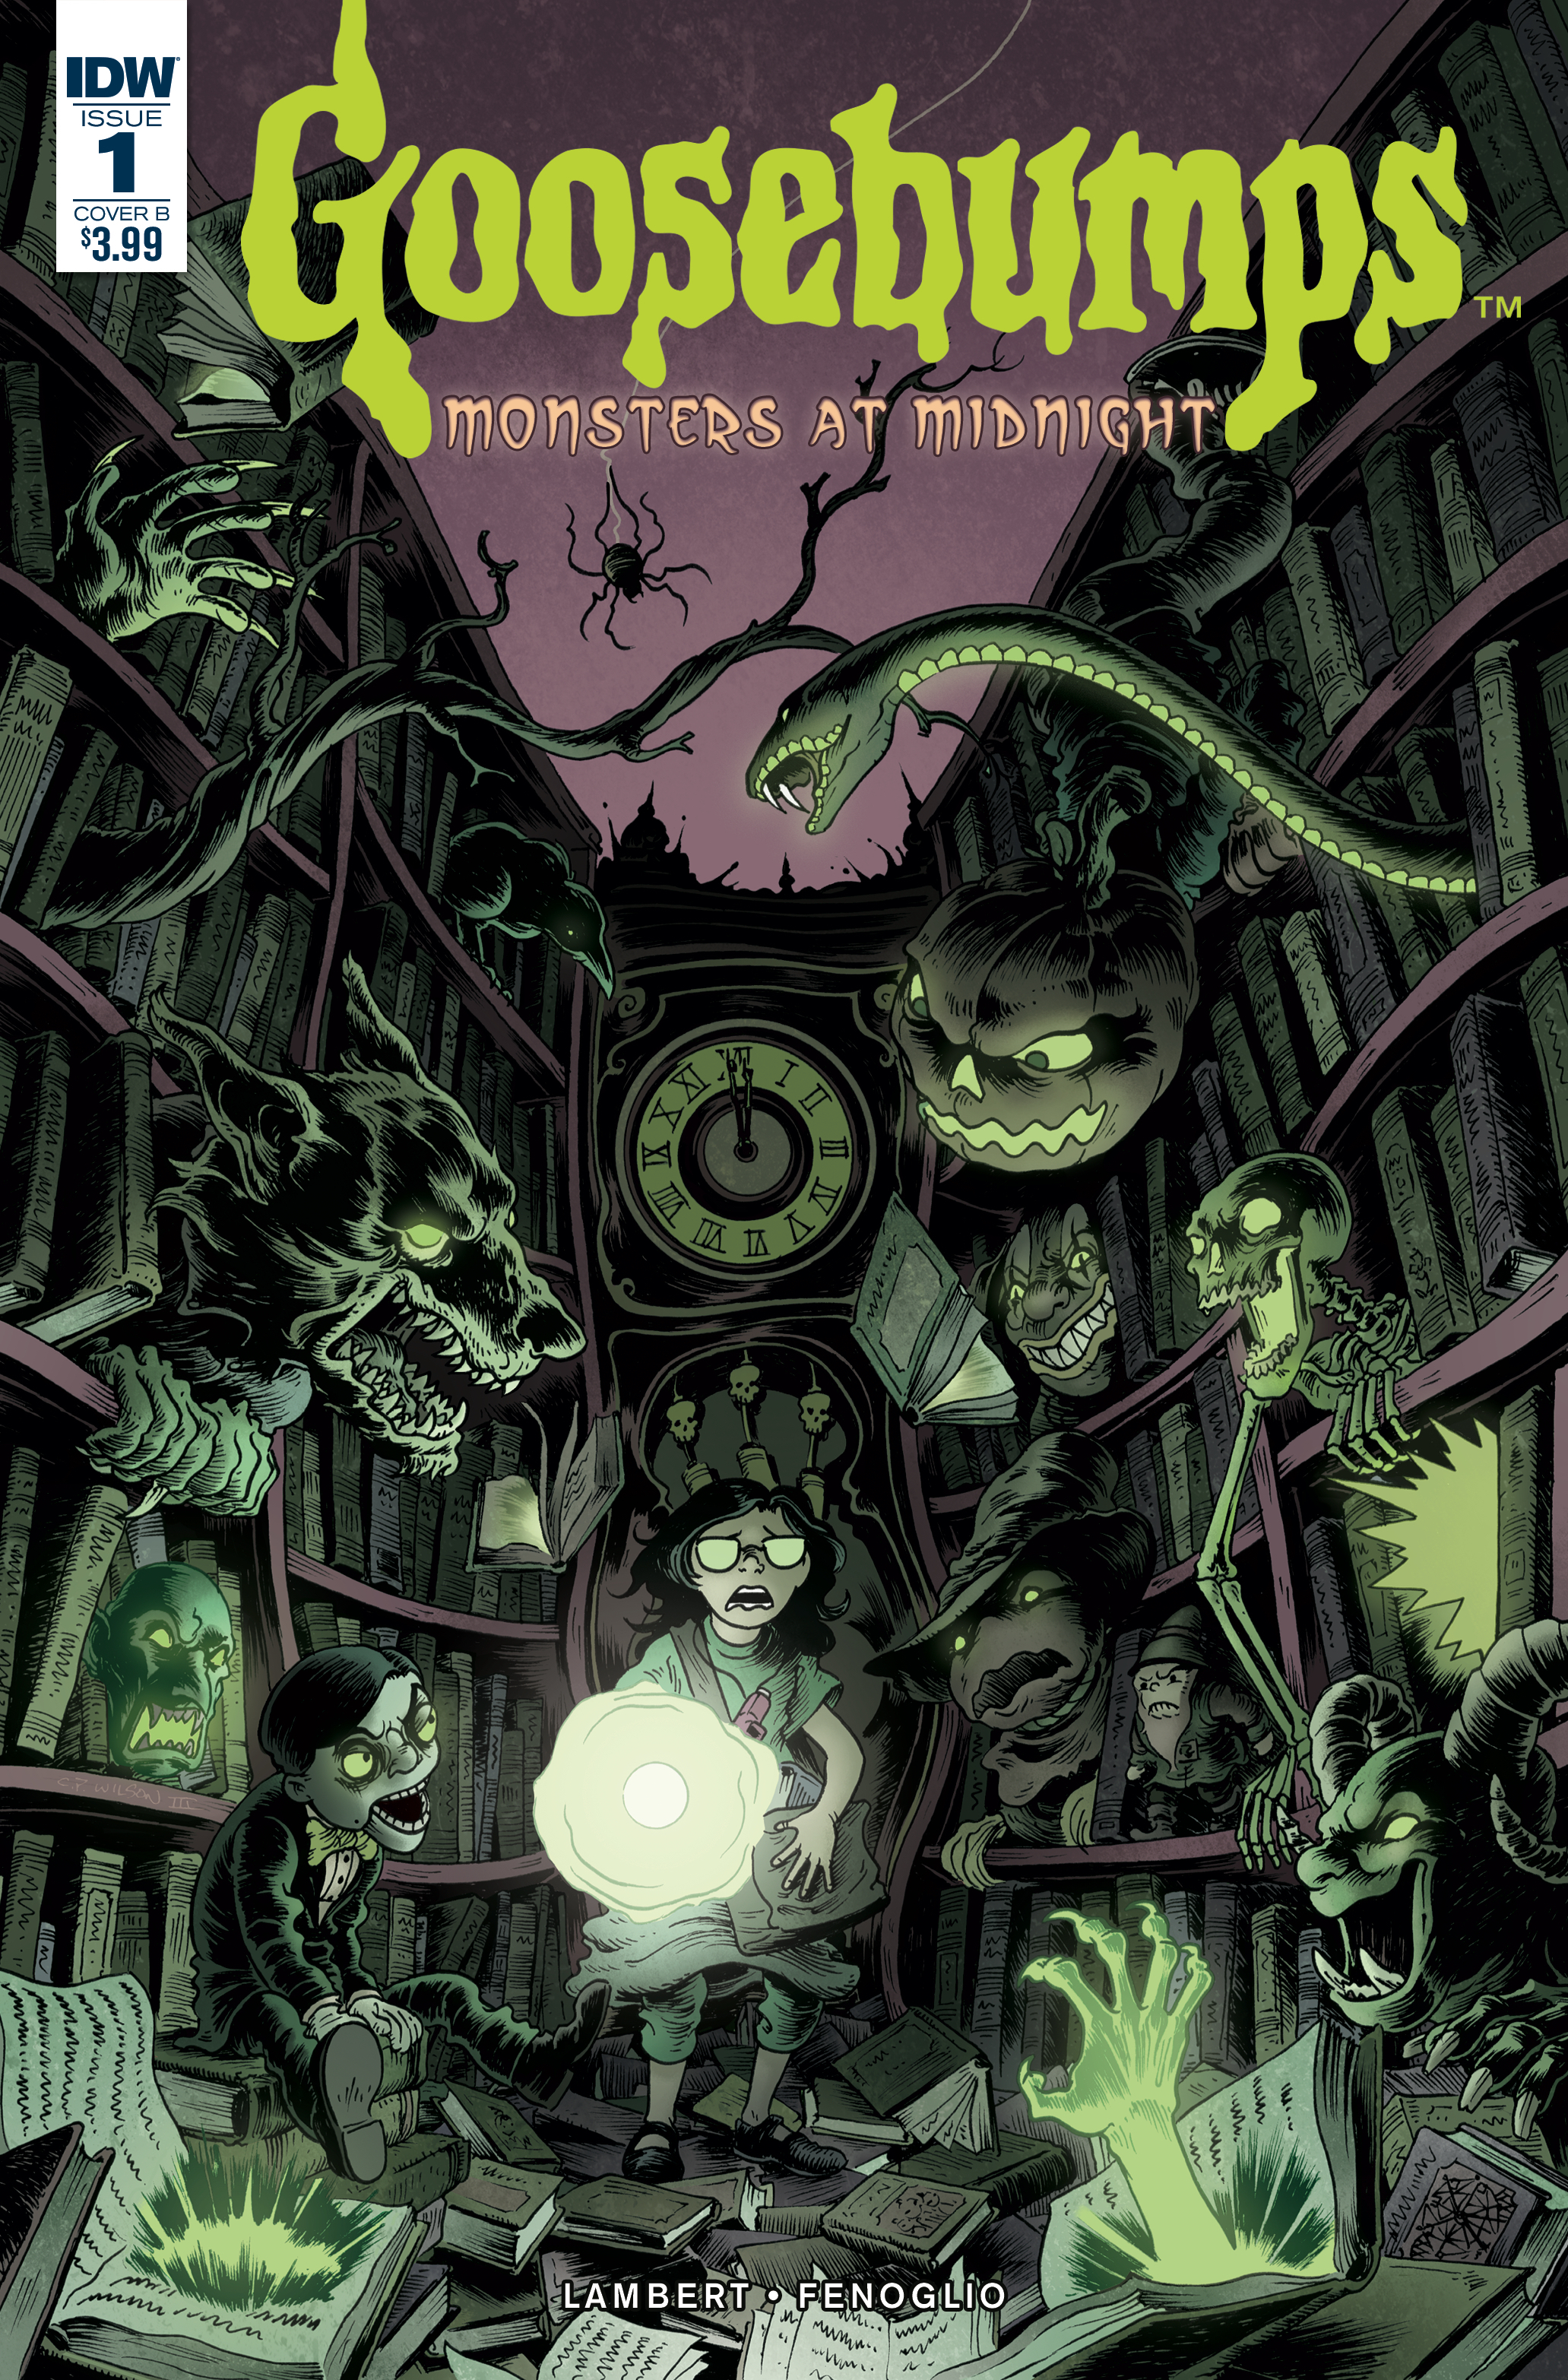 GOOSEBUMPS MONSTERS AT MIDNIGHT #1 (OF 3) CVR B WILSON III